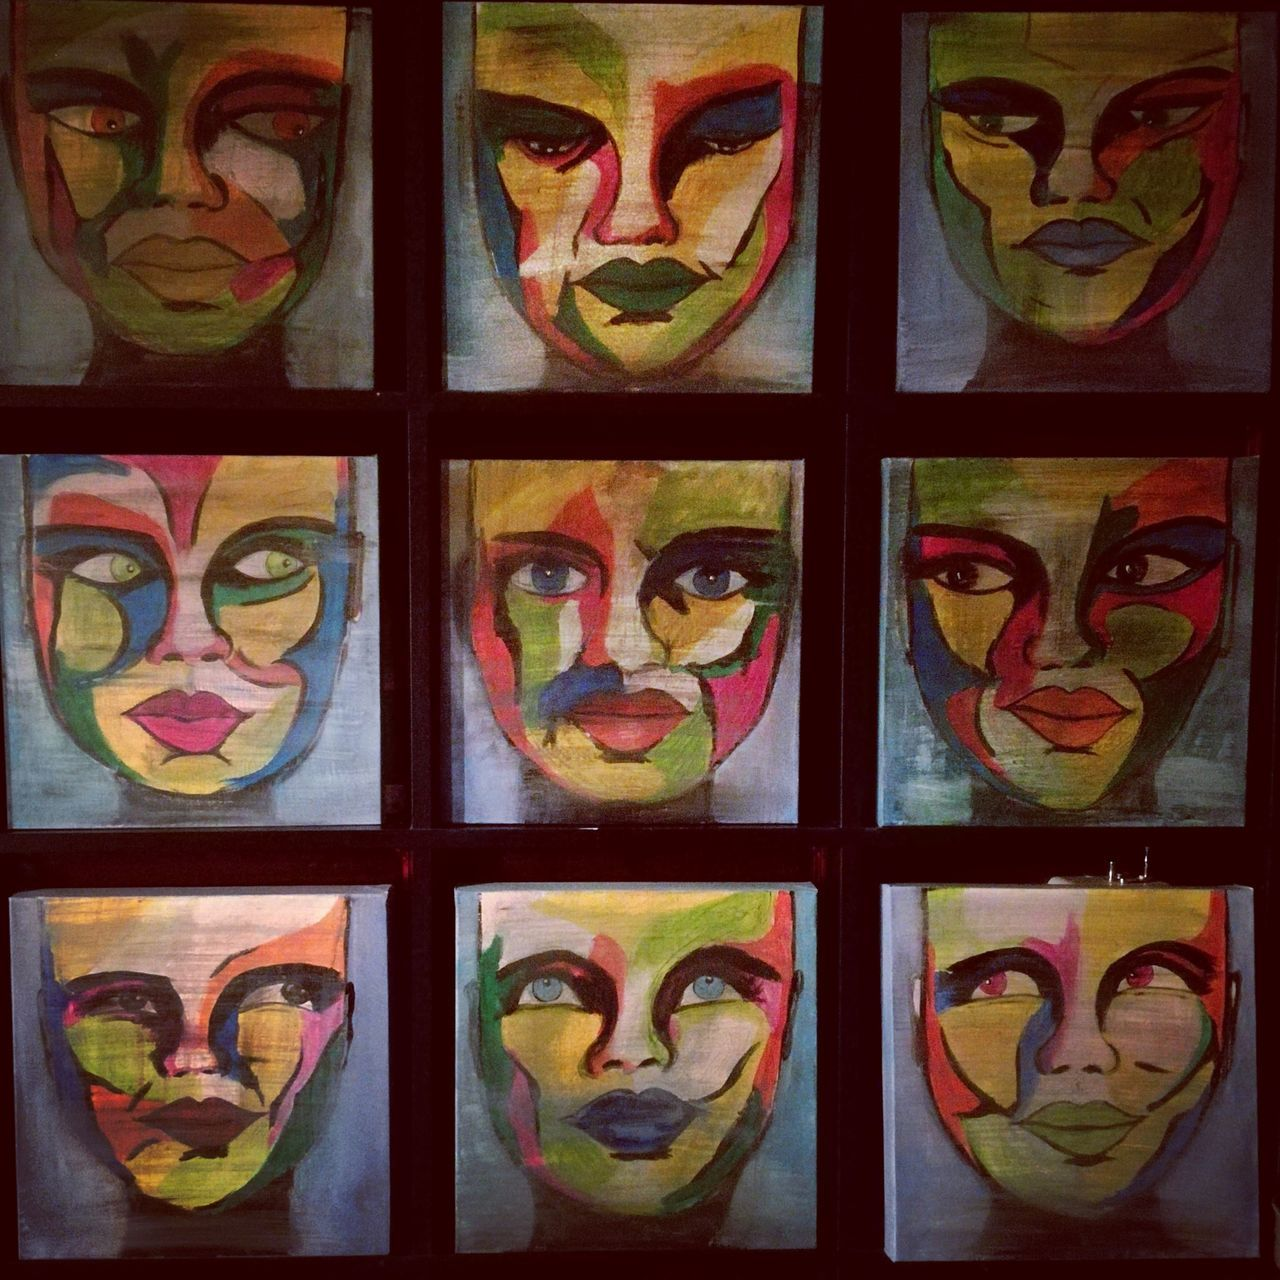 Me,myself and I Multi Colored Creativity Pattern No People Cultures Neat Indoors  Close-up Day Art, Drawing, Creativity Art Beauty Portrait Painting ArtWork Paint Acrylic Painting People Artist Painted Image Acrylic Creativity Mywork Artistic Hobby